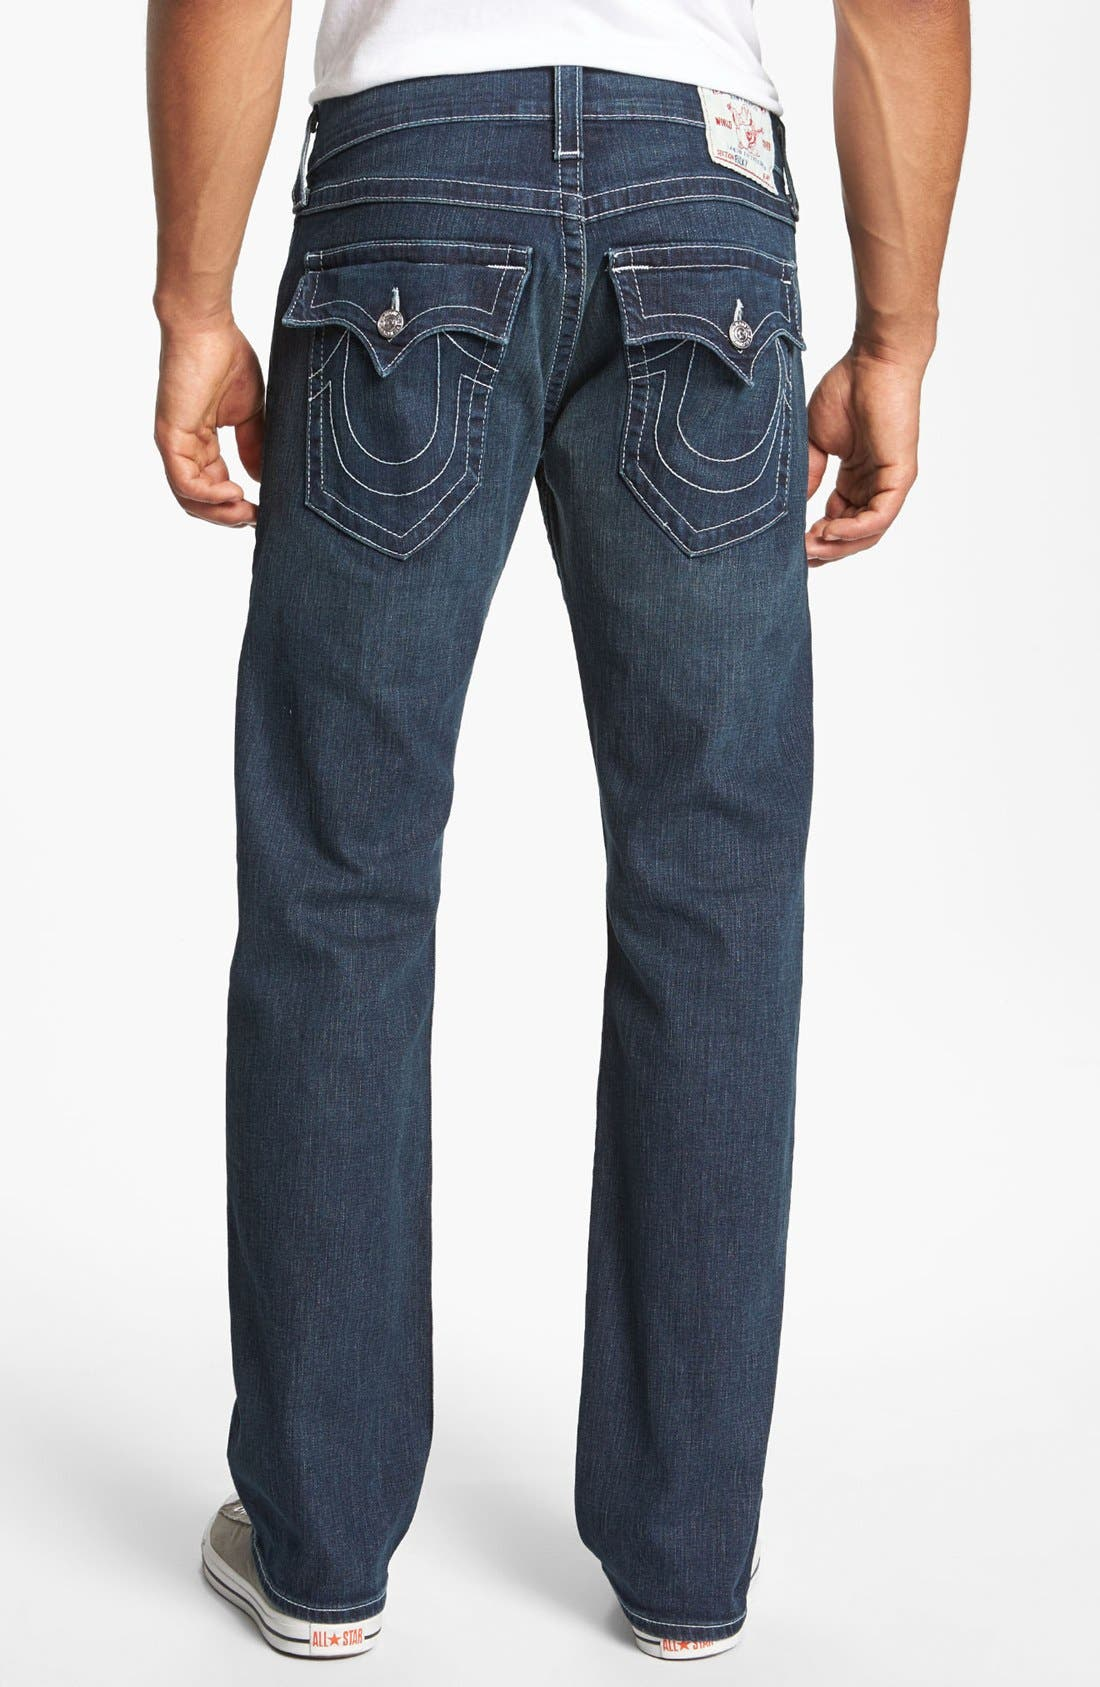 Main Image - True Religion Brand Jeans 'Ricky' Stretch Relaxed Fit Jeans (Monte)